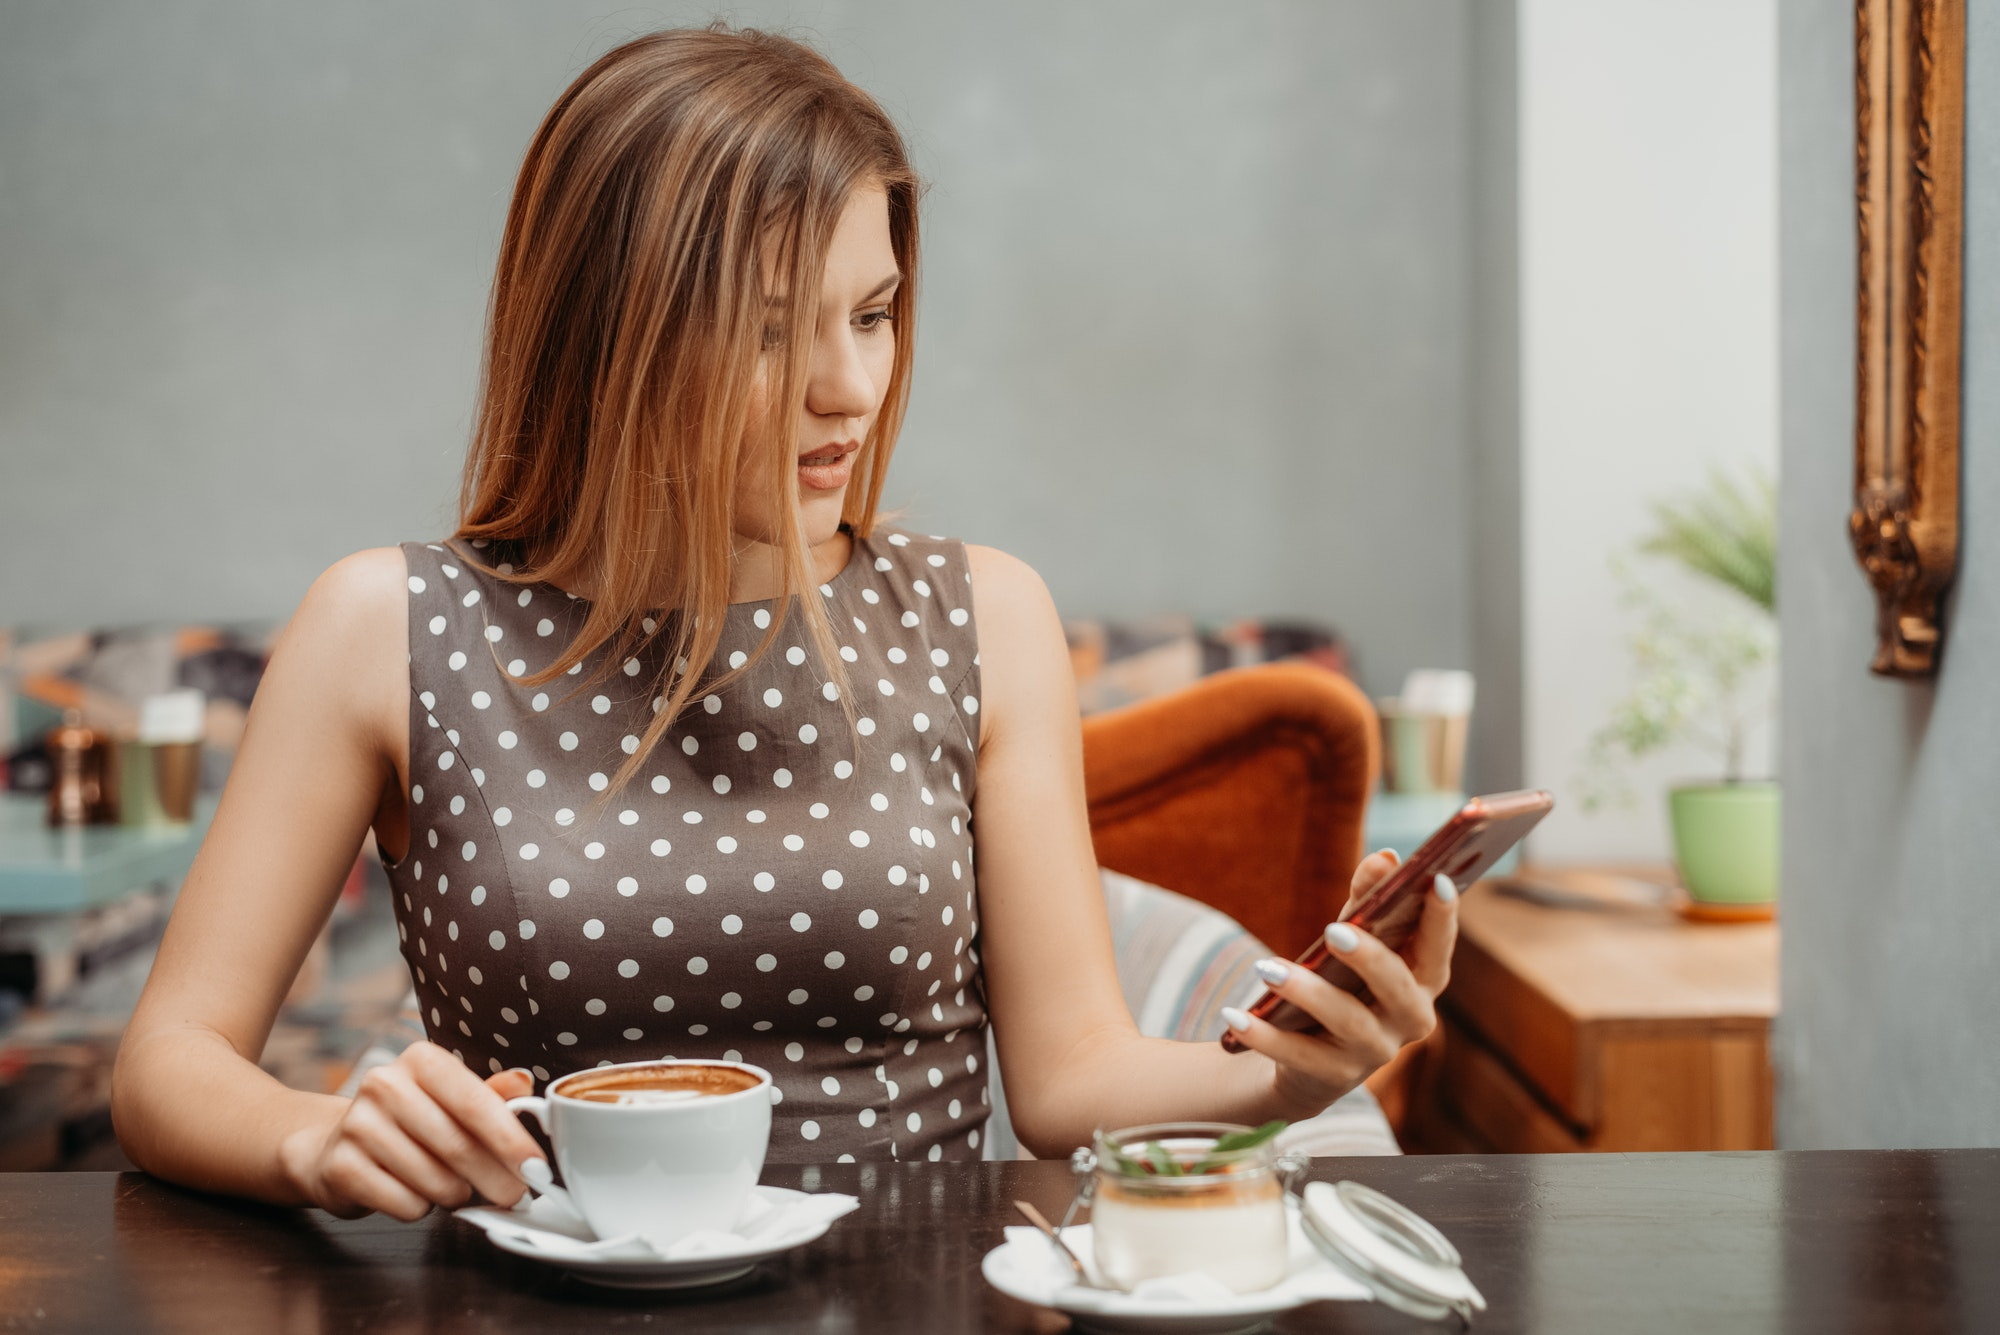 Beautiful woman with amazed look using a mobile phone in cafe. Reading or SMS